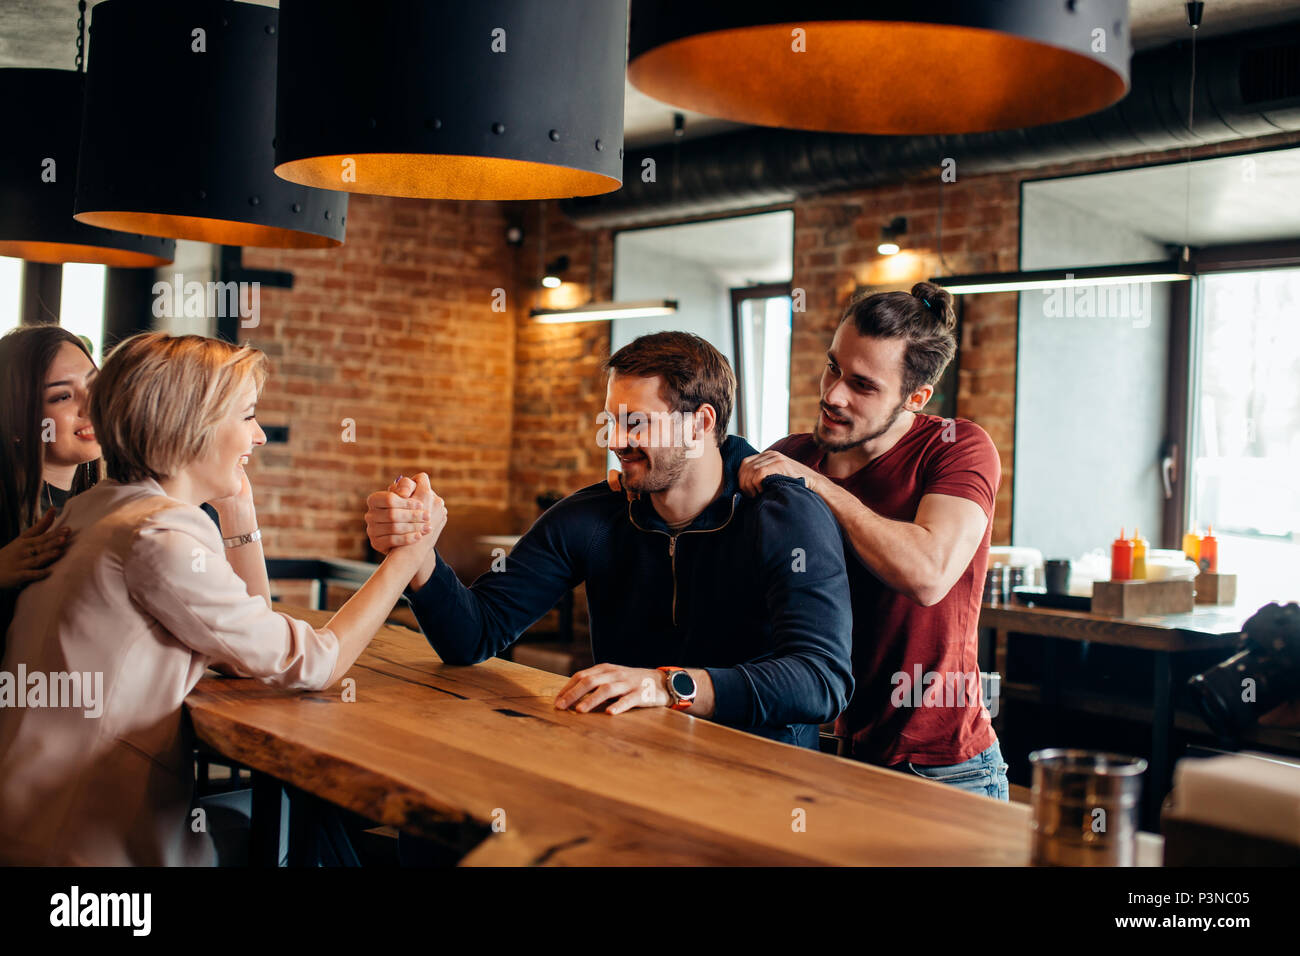 Cheerful gyu and girl having fun arm wrestling each other in pub. - Stock Image